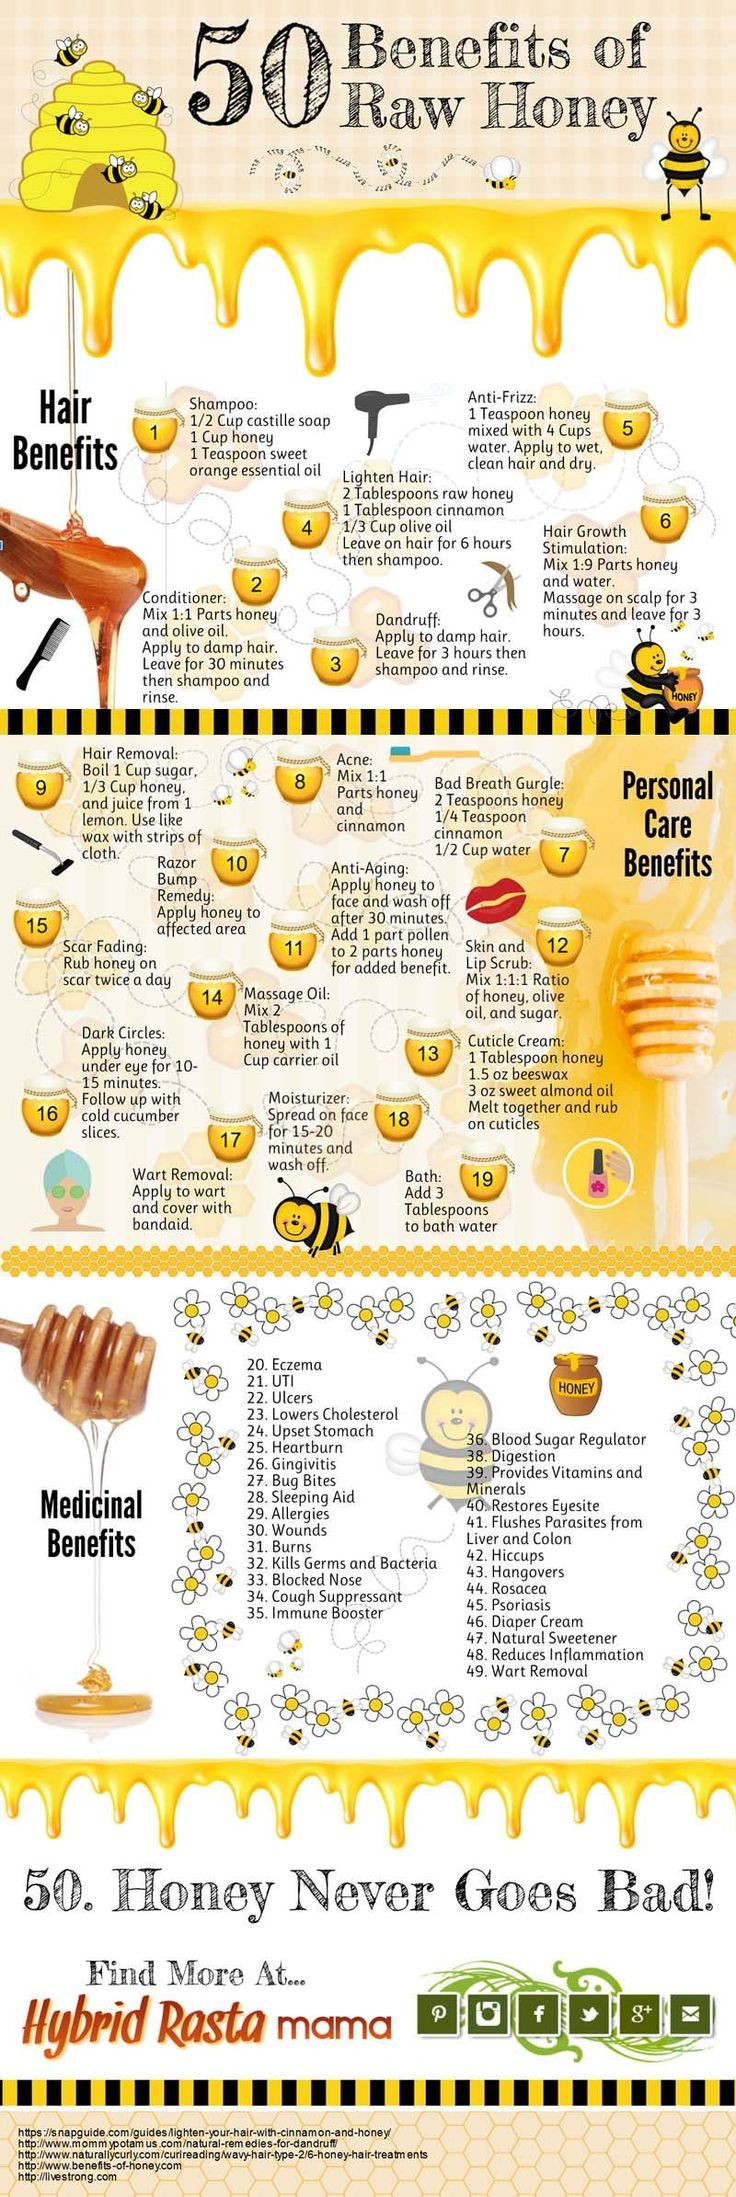 50 Benefits of Raw Honey Infographic - Find out what all the hype is about raw honey. Plus a source to get it for pretty cheap! #rawhoney                                                                                                                                                      More